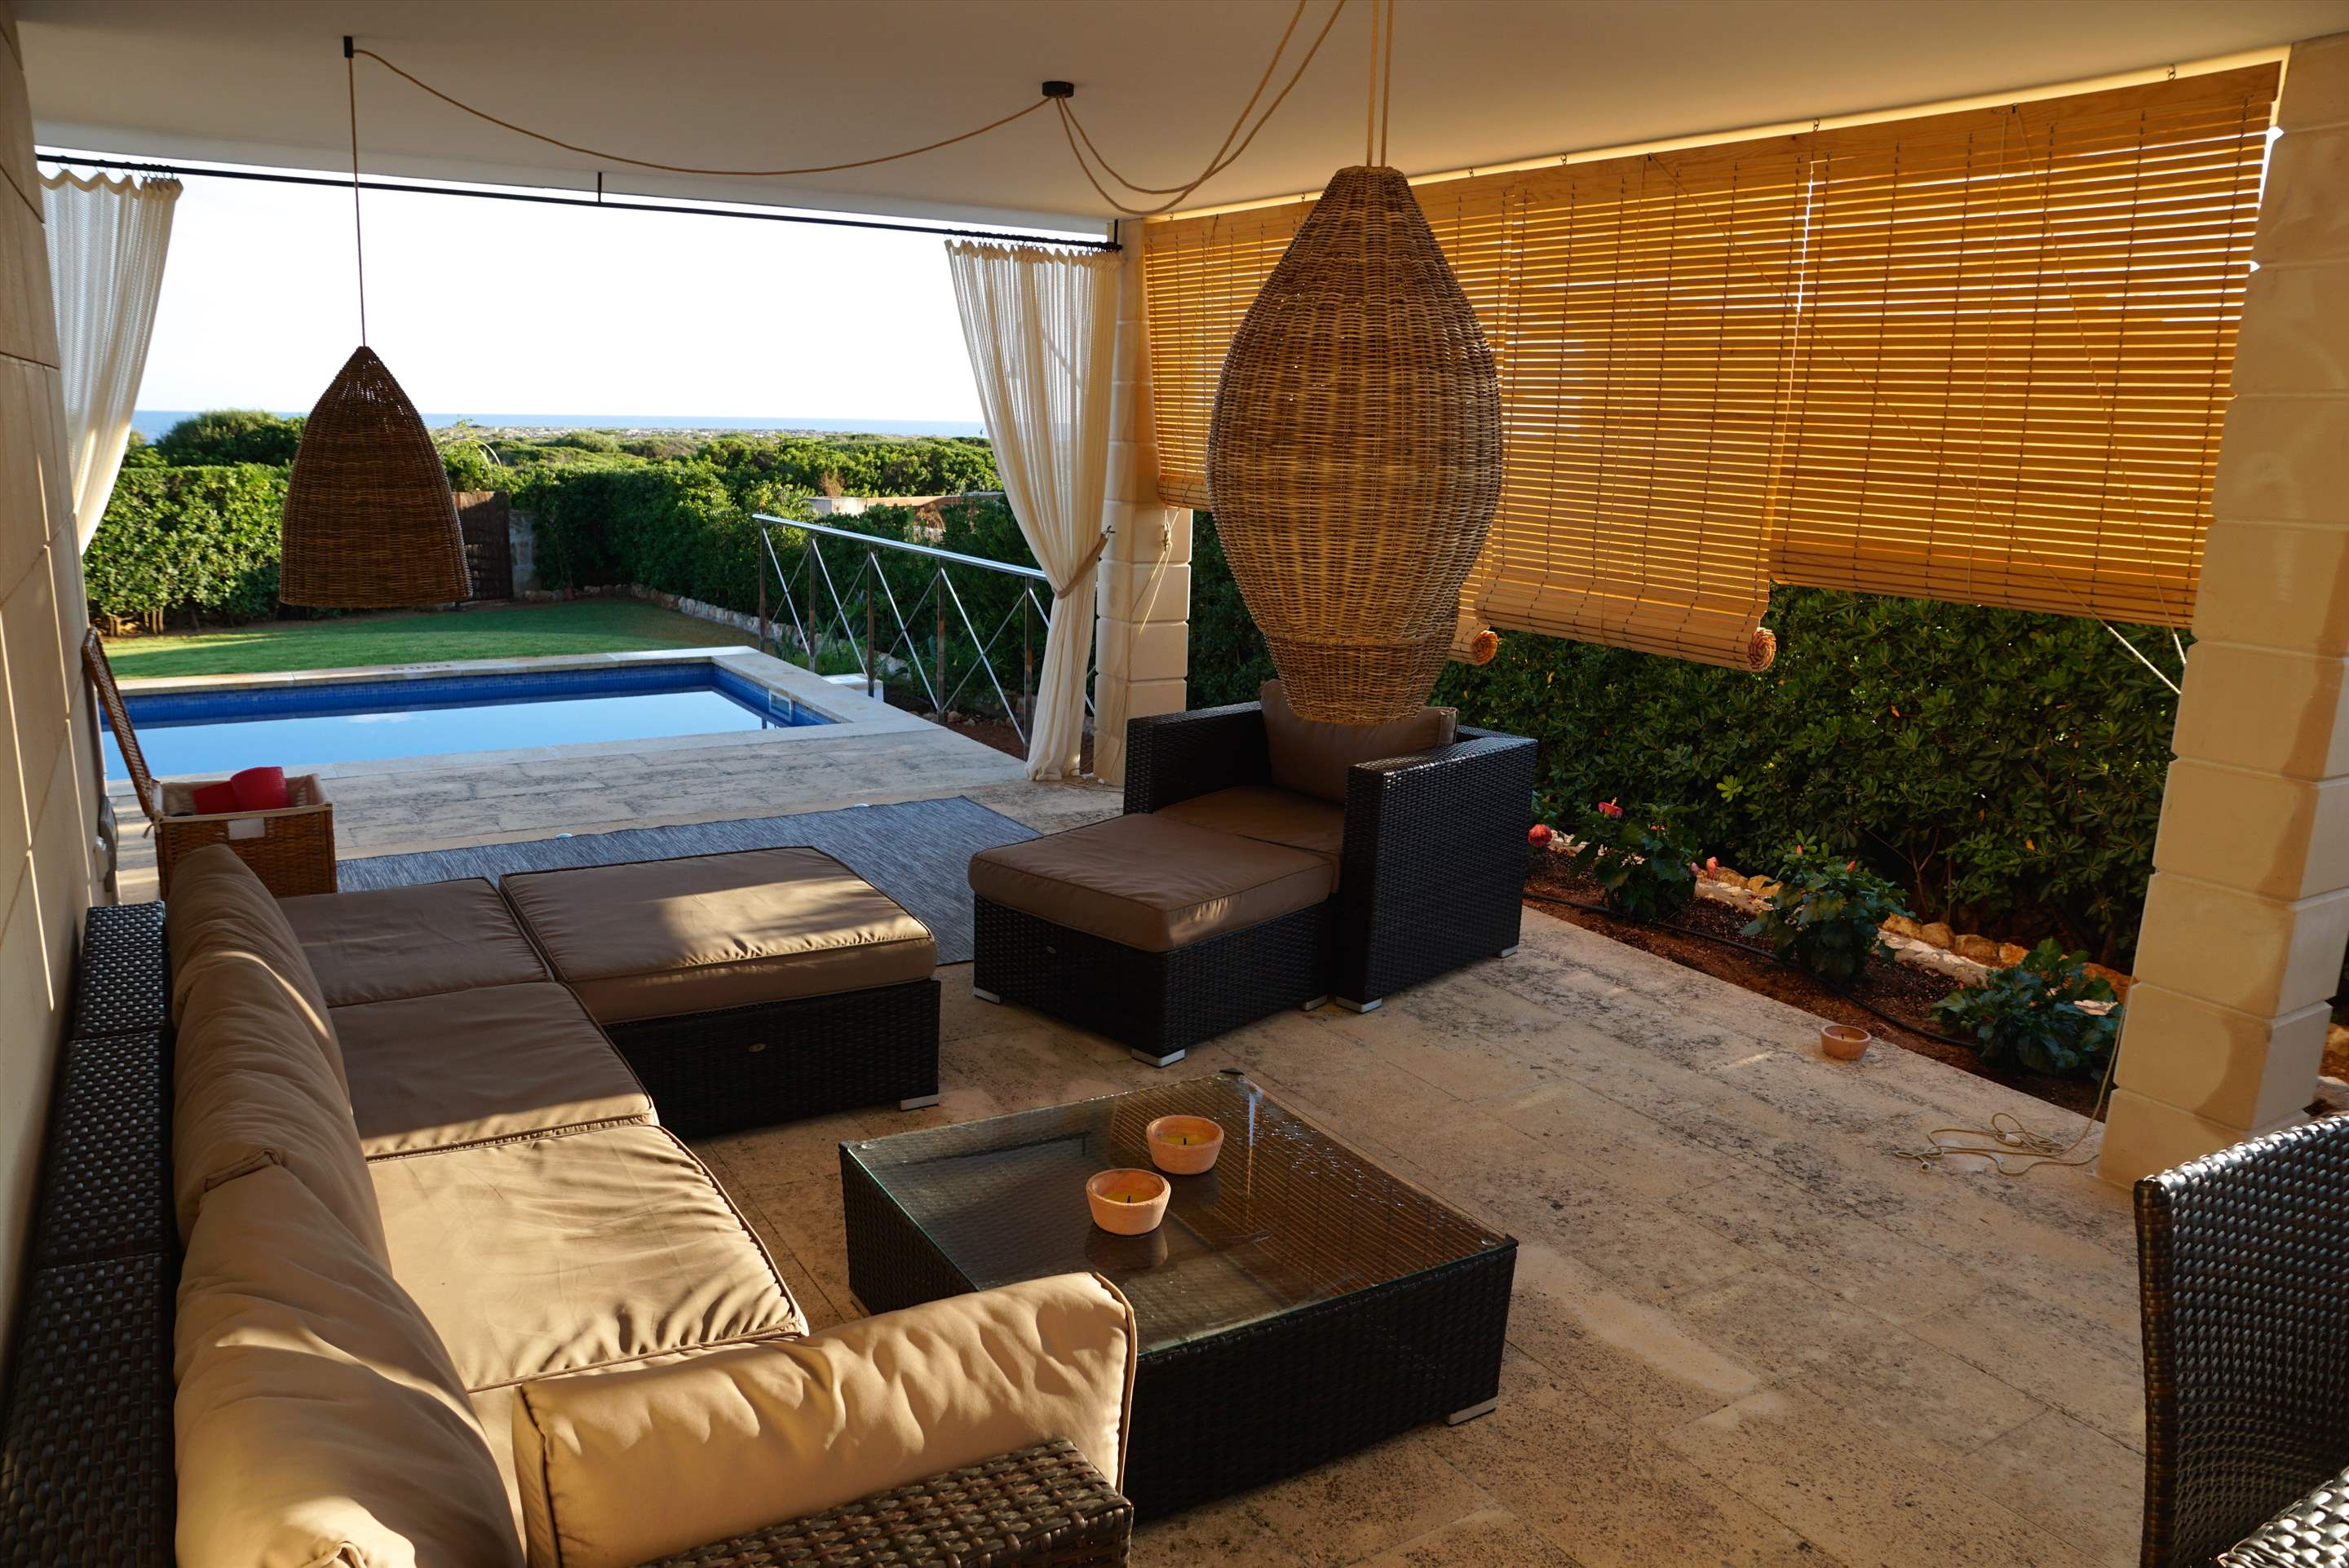 Villa Zapa, 3 bedroom villa in Mahon, San Luis & South East, Menorca Photo #3